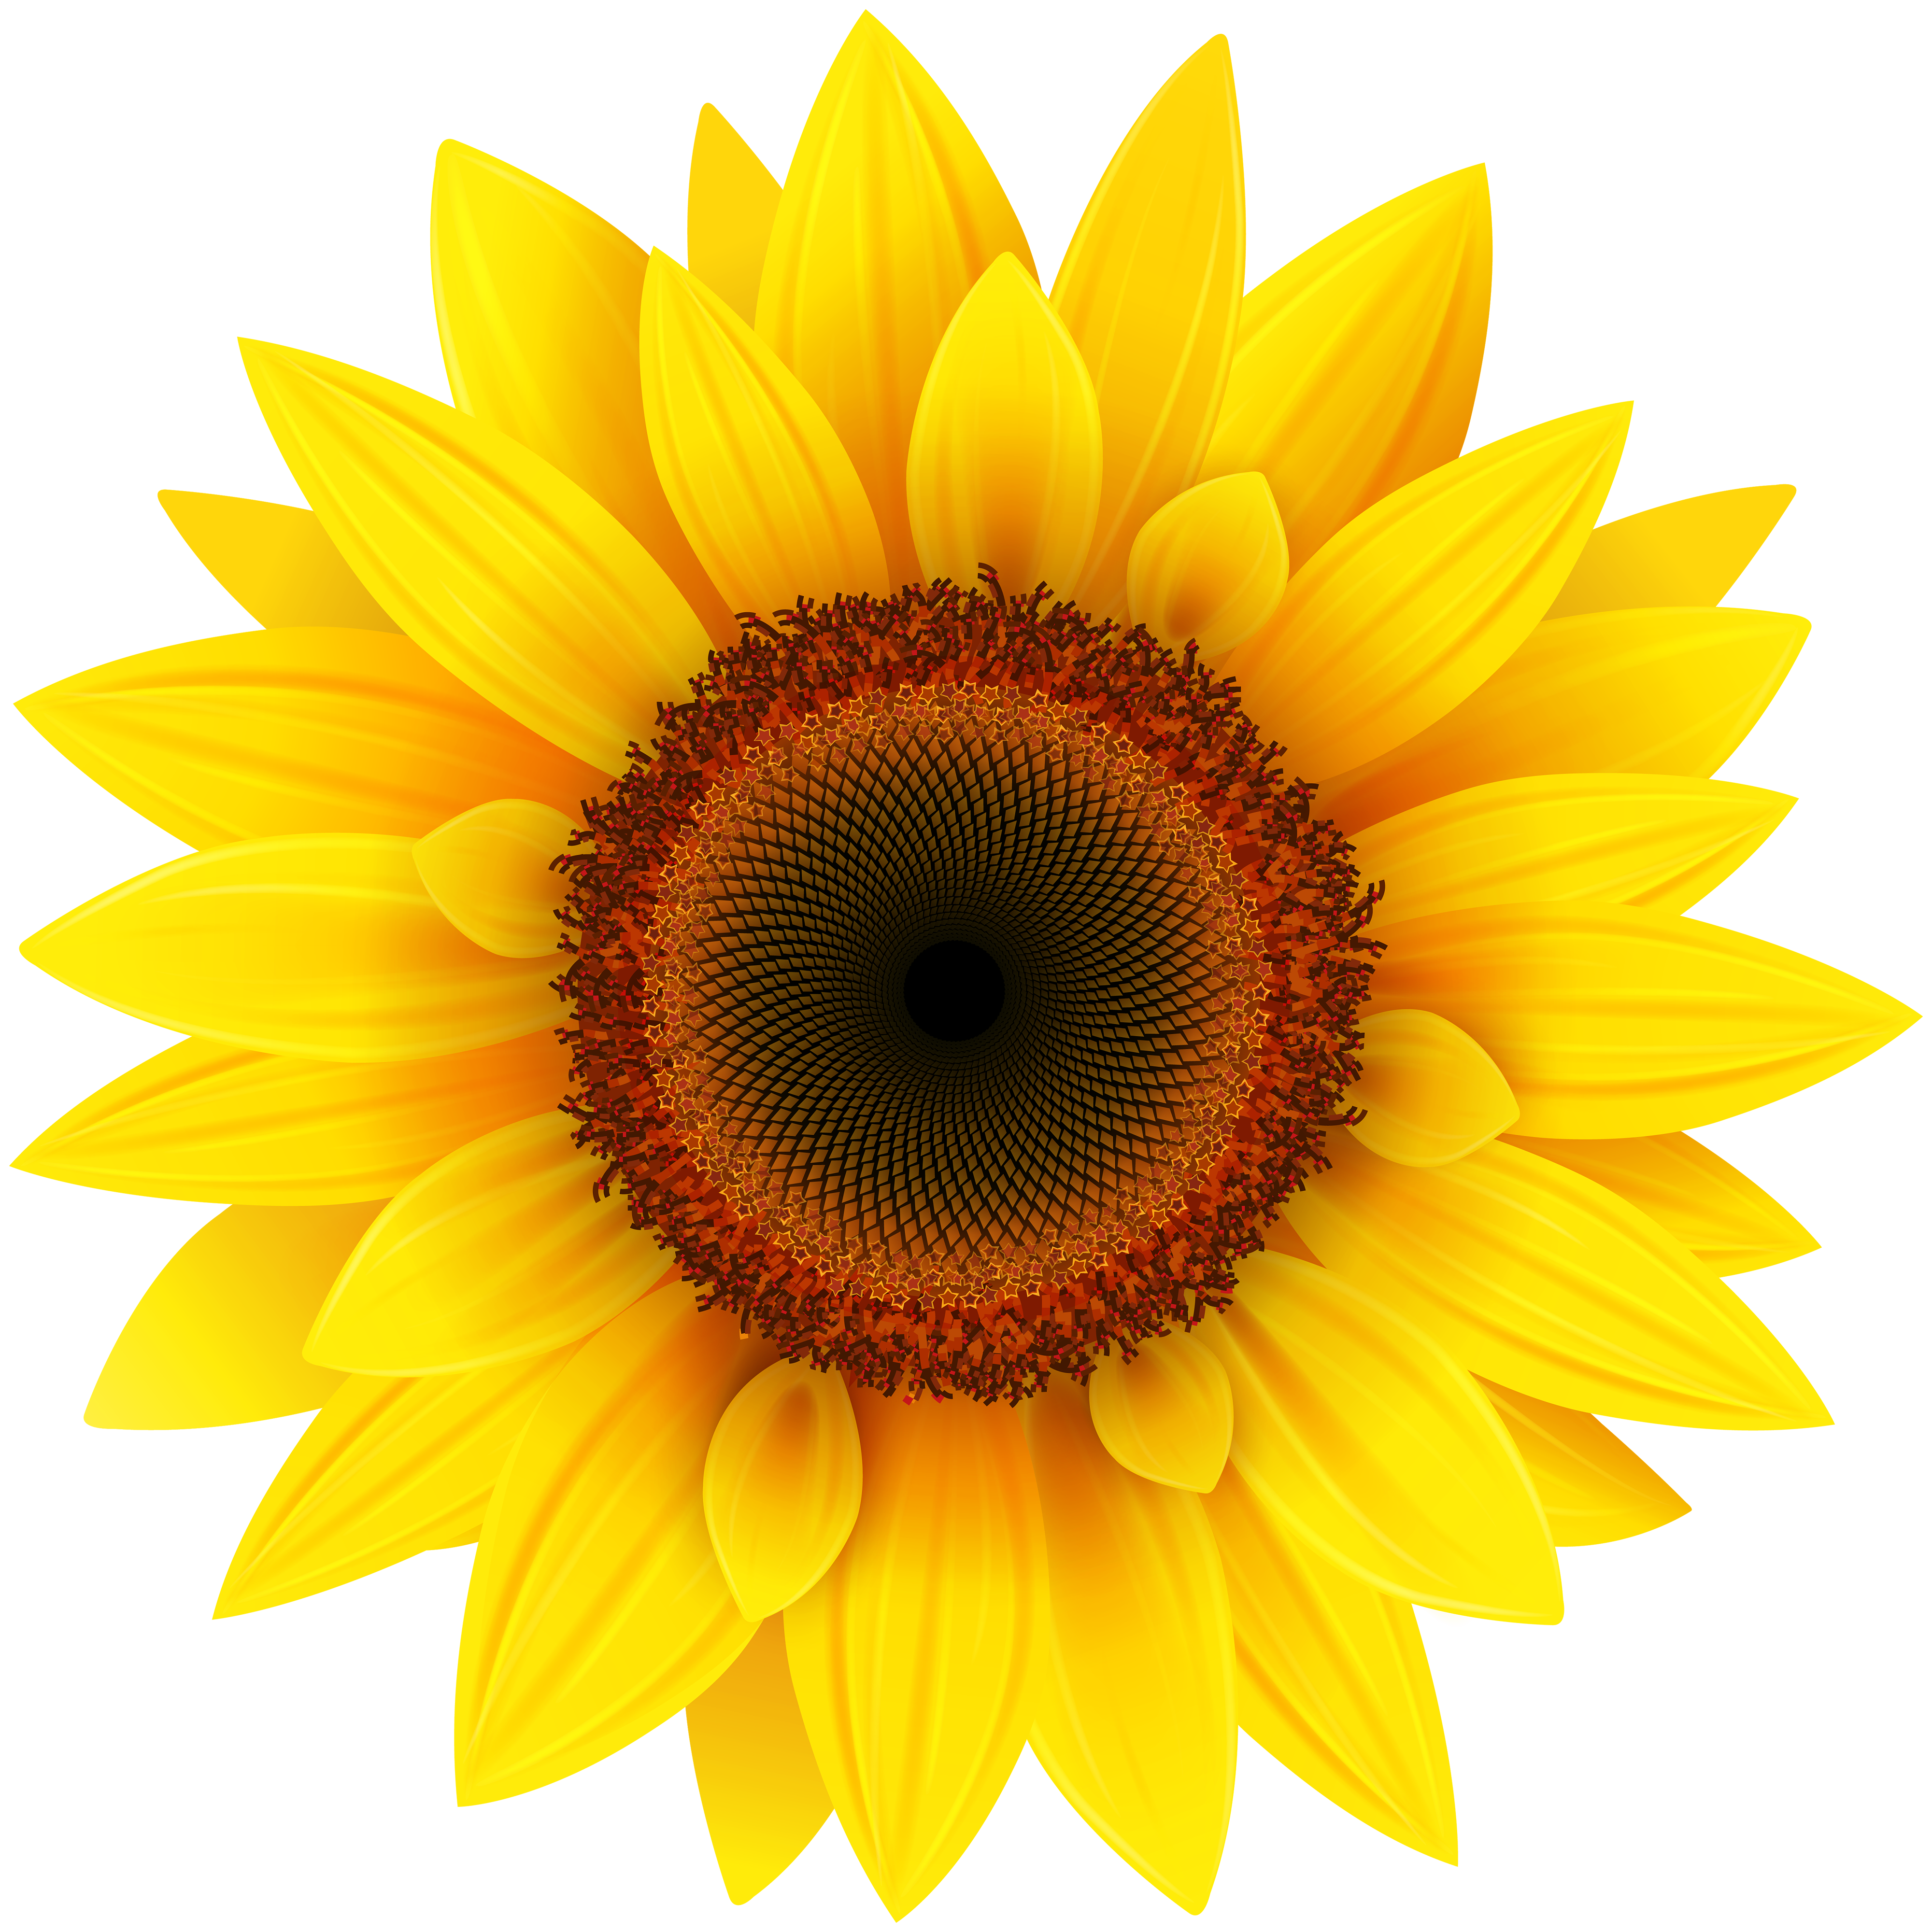 Sunflower clipart - Clipground